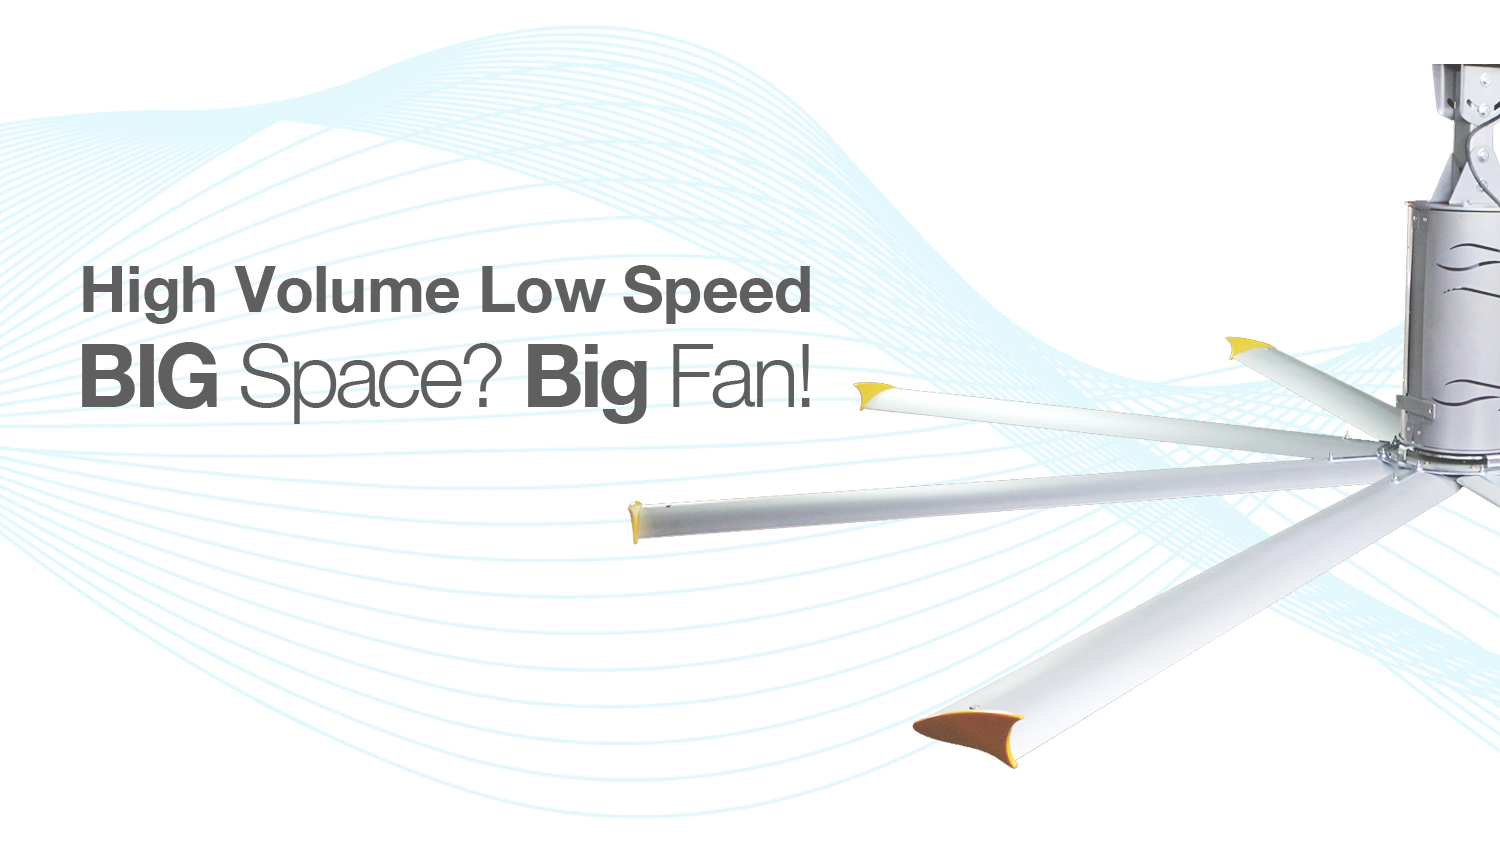 High Volume Low Speed Fan : Spacefans the most natural cooling solutions for big